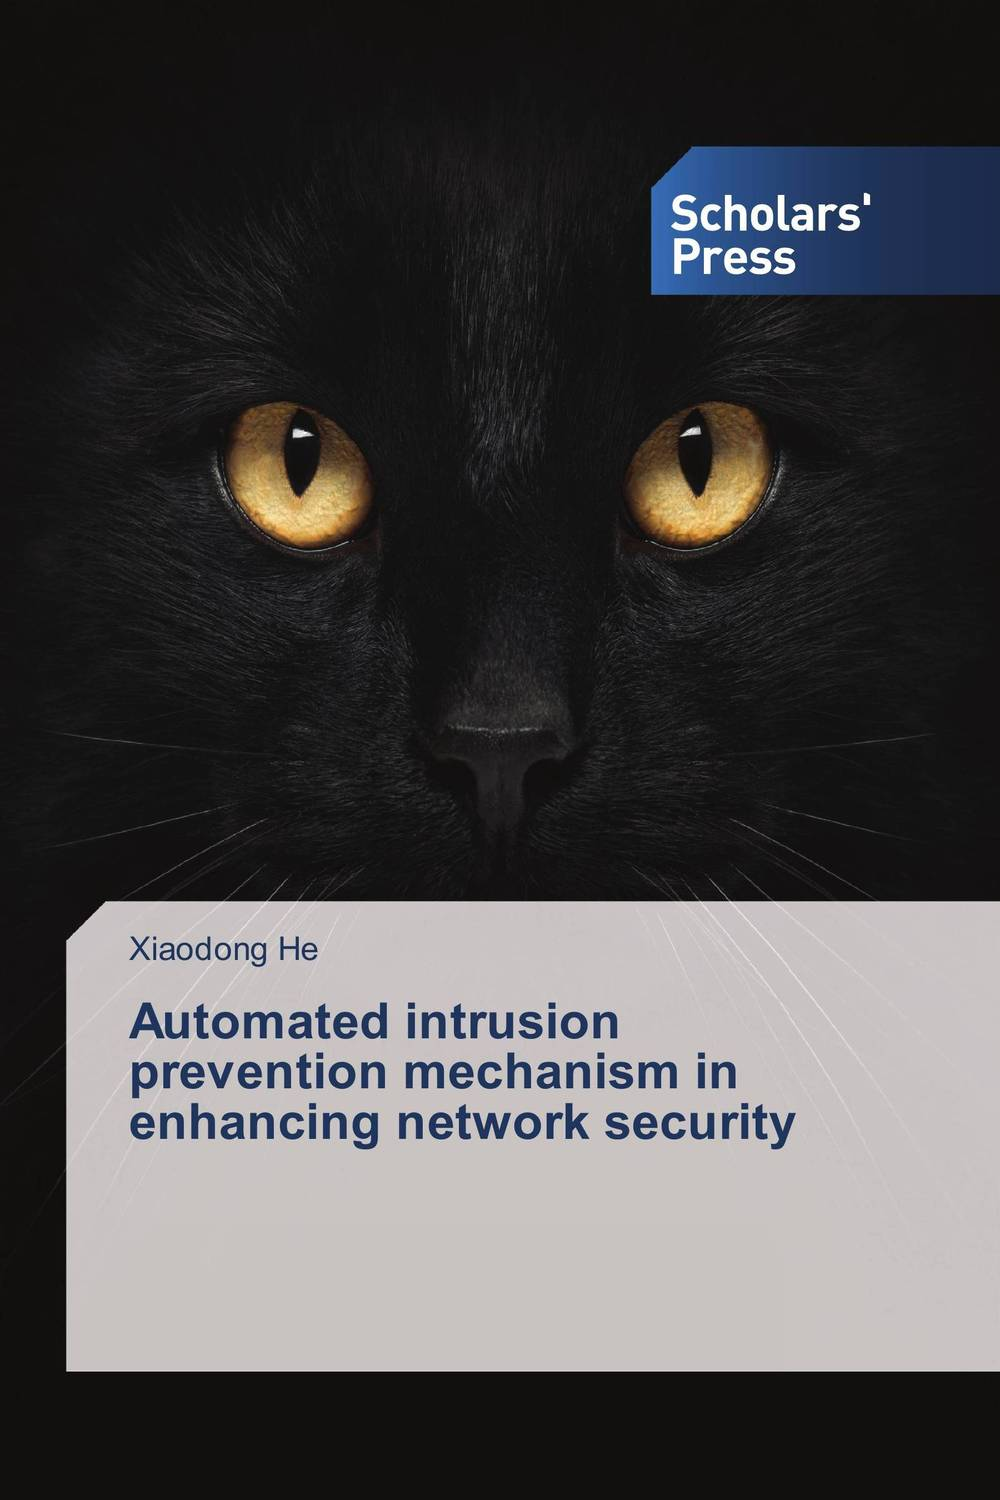 Automated intrusion prevention mechanism in enhancing network security